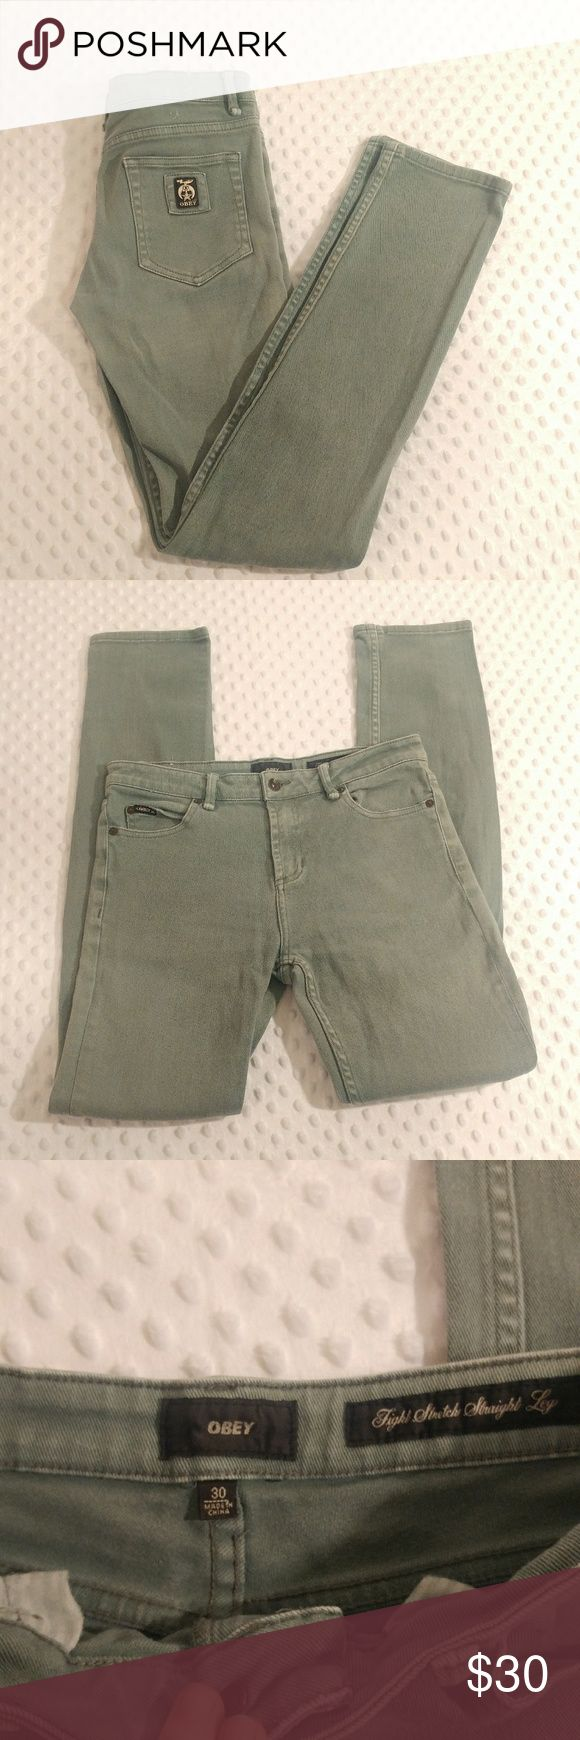 """OBEY men's skinny jeans OBEY (Tight Stetch Straight Leg) skinny/straight legged jeans (6"""" leg opening). Size 30  Waist 30""""  Rise 9.5""""  Inseam 32""""  *jeans are modeled on a female form Obey Jeans Skinny"""